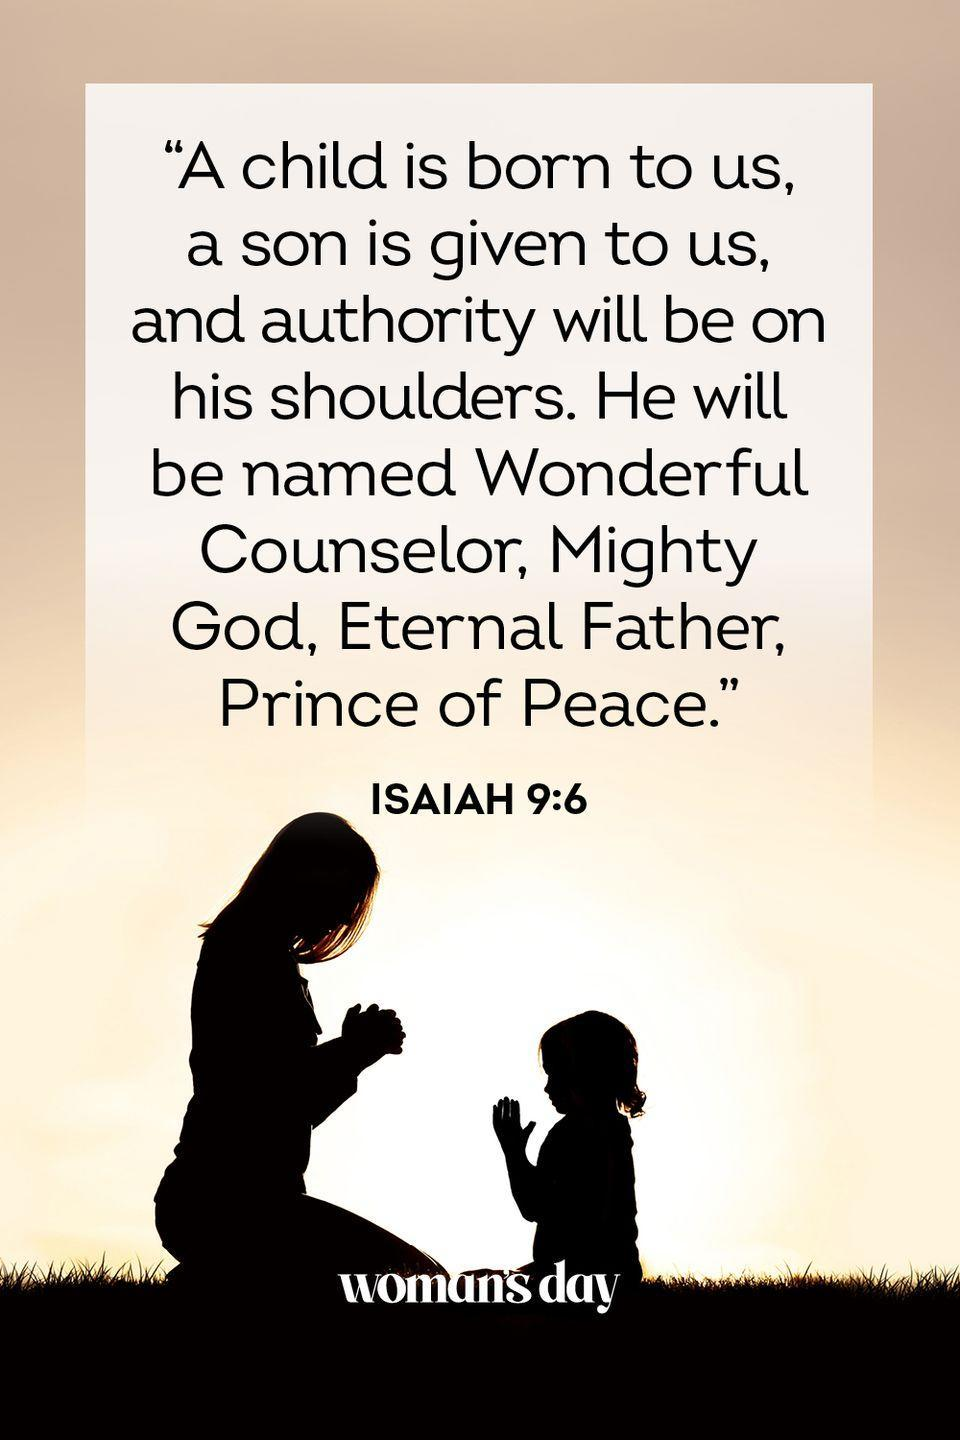 """<p>""""A child is born to us, a son is given to us, and authority will be on his shoulders. He will be named Wonderful Counselor, Mighty God, Eternal Father, Prince of Peace."""" — Isaiah 9:6</p><p><strong>The Good News</strong>: God is here to shoulder your burdens. Lighten your load by handing them over to him.</p>"""